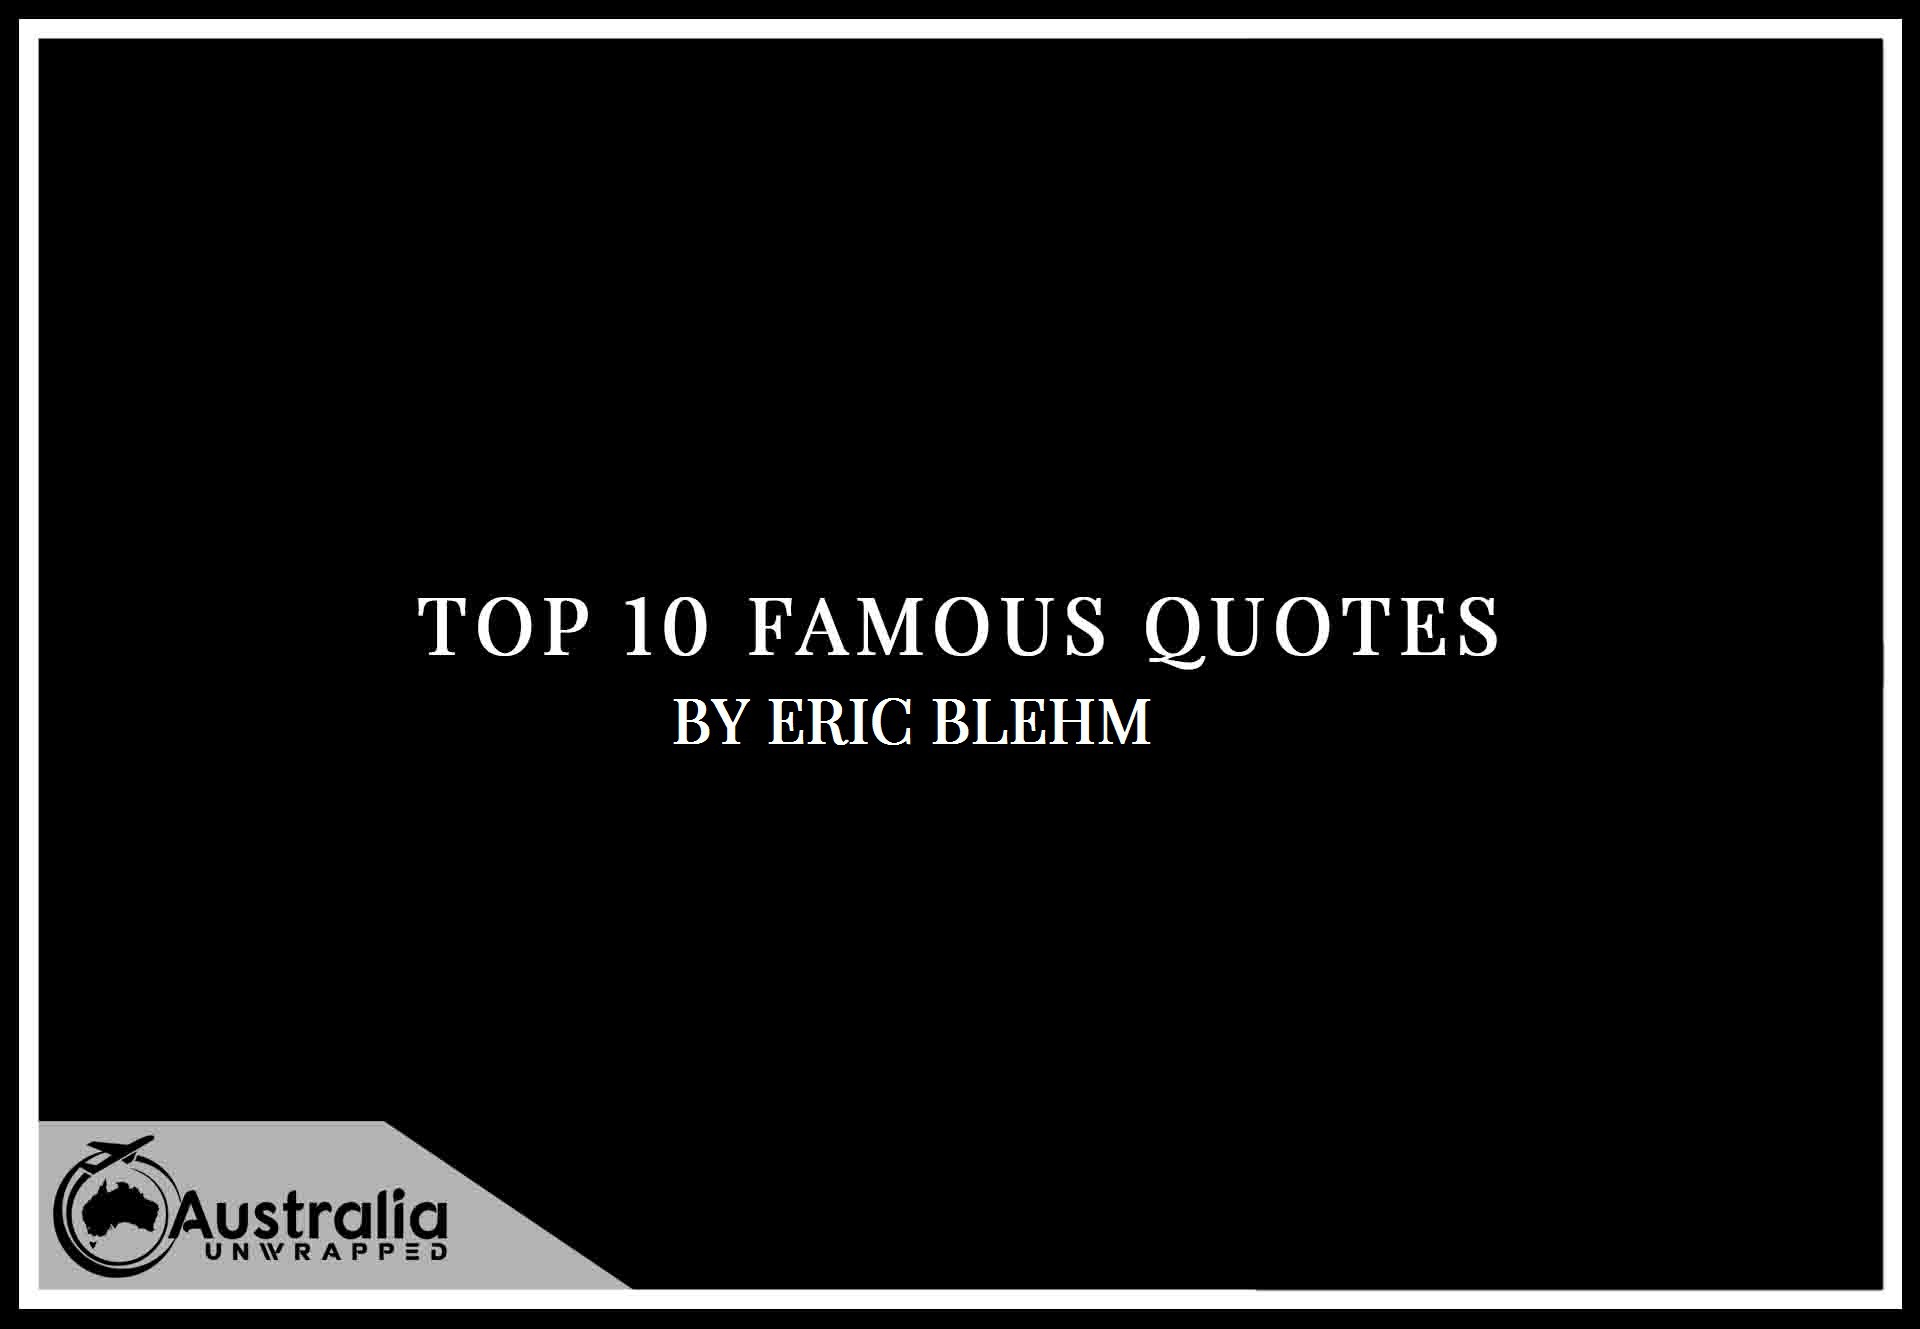 Eric Blehm's Top 10 Popular and Famous Quotes